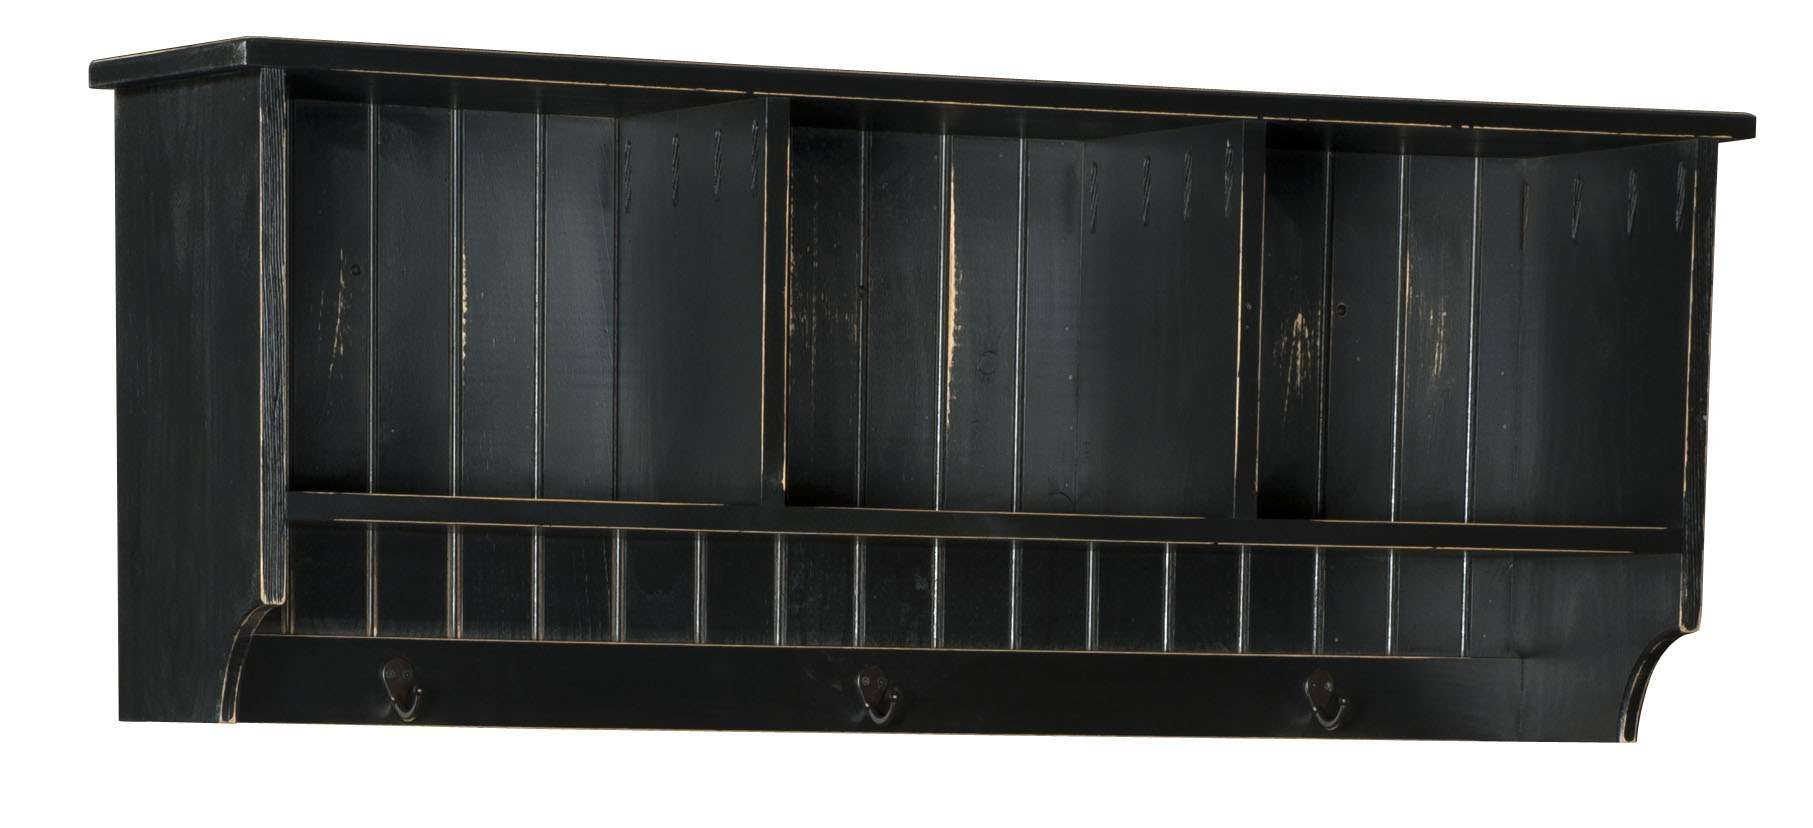 "Black 48"" Hall Shelf"